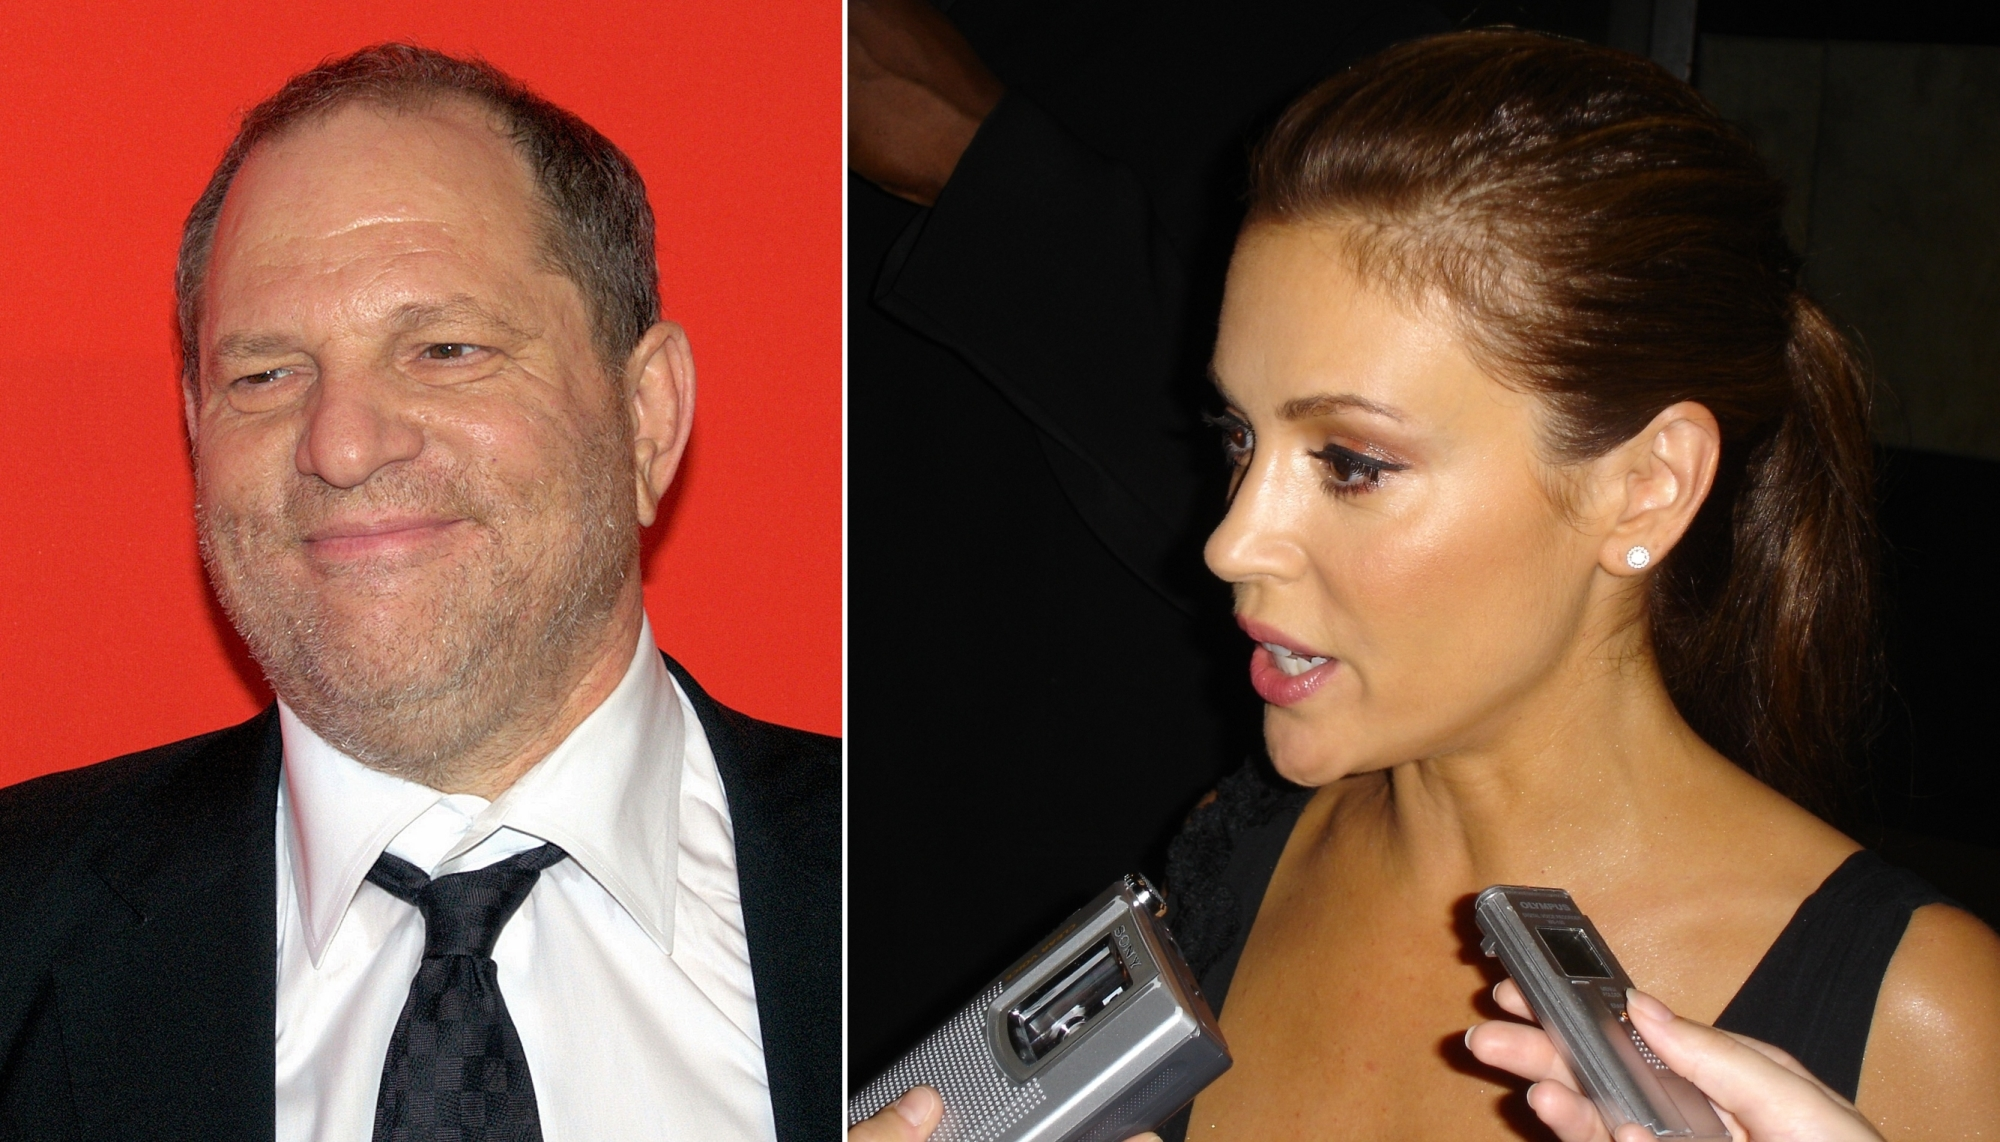 Harvey_Weinstein_2010_Time_100_Shankbone-horz